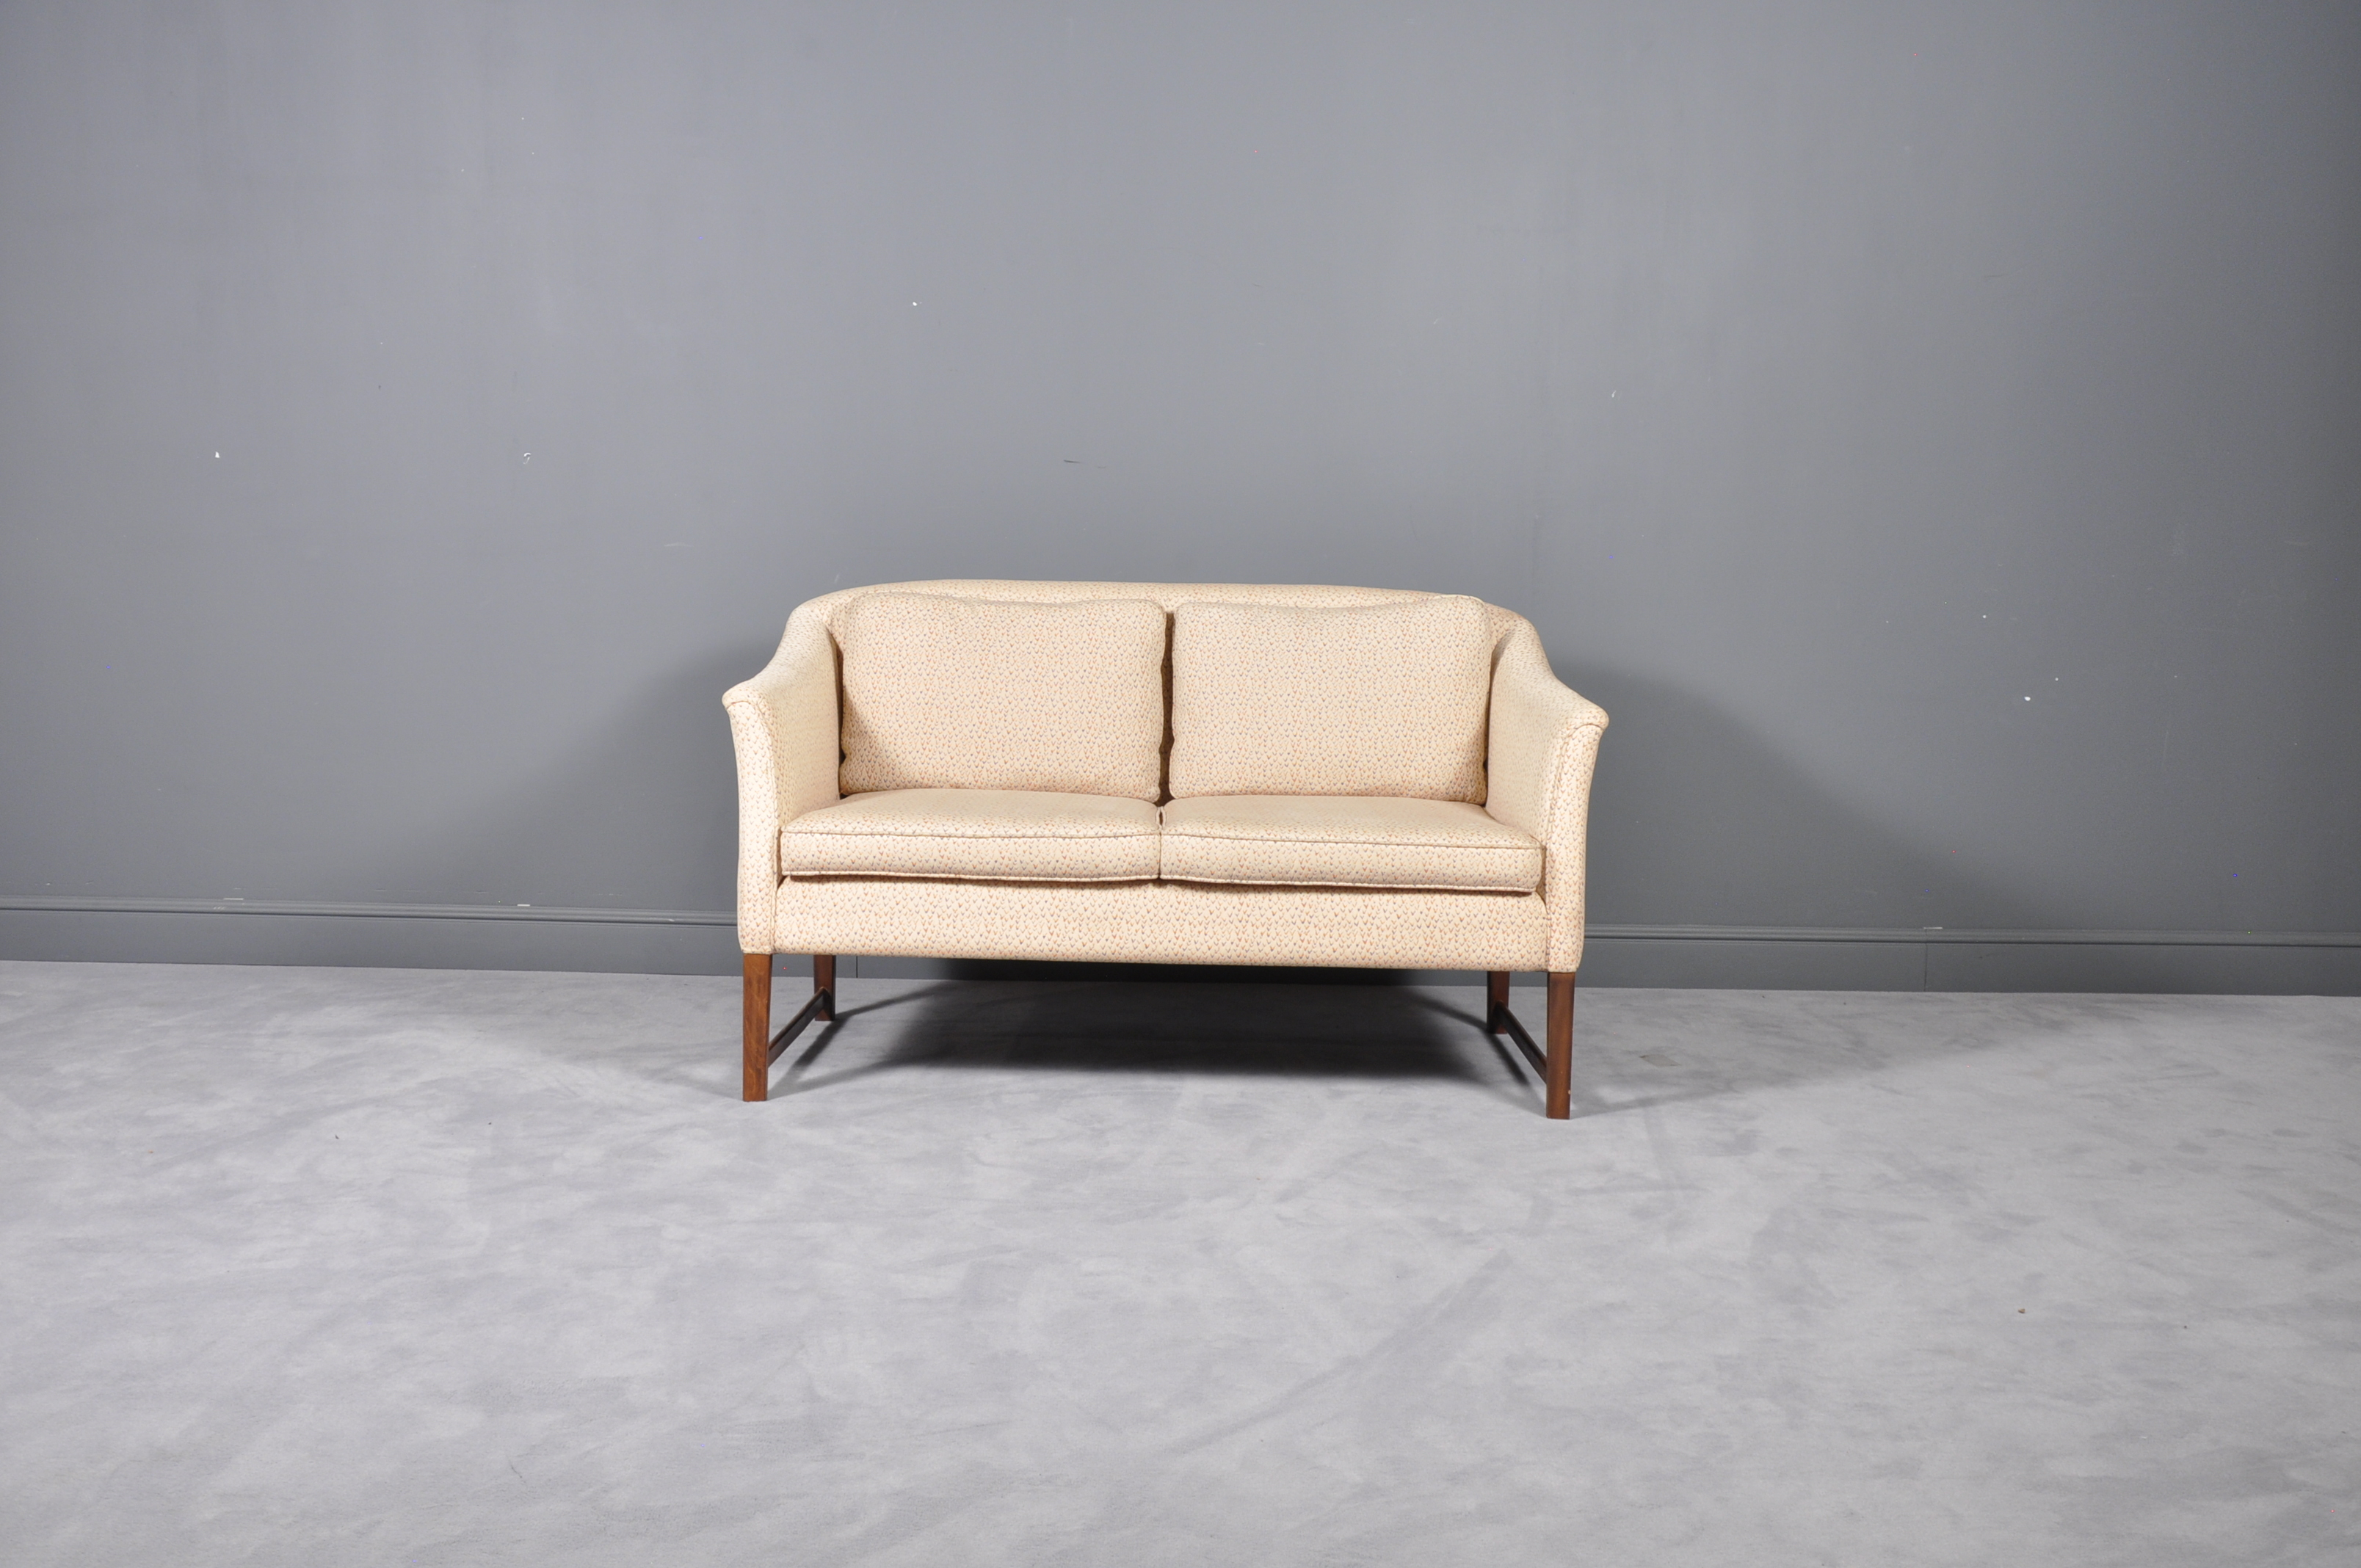 Dieter Knoll Collection Two Seater Sofa 1980s Retro Furniture